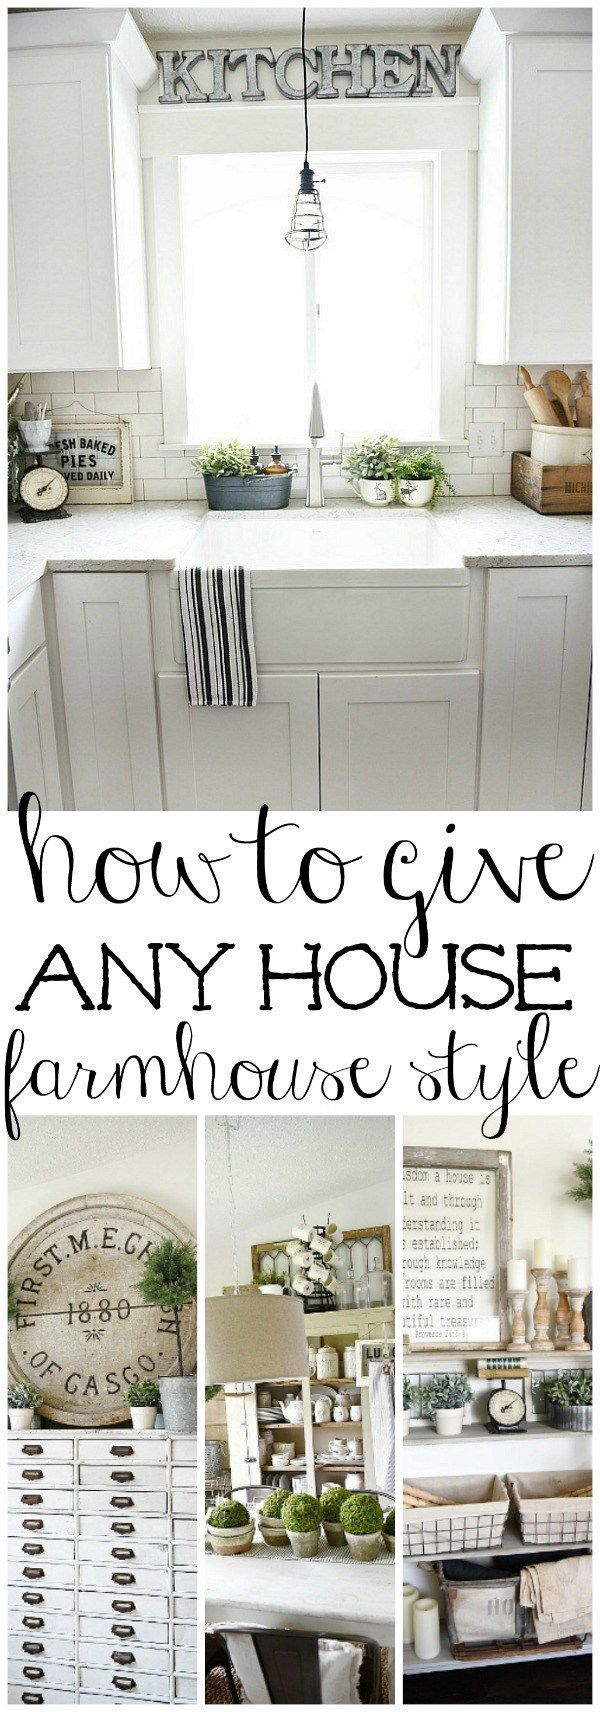 950 best Farmhouse Inspiration images on Pinterest | Country style Decorating Ideas Farm Kitchen Co on farm kitchen backsplash ideas, farm kitchen paint ideas, farm kitchen art, farm lighting ideas, holidays decorating ideas, farm interior decorating, farm decoration ideas, farm kitchen fabric, farm furniture ideas, farm kitchen decorations, farm kitchen design ideas, farm kitchen wall decor, farm kitchen remodeling, farmhouse decorating ideas, farm kitchen renovations, bakery decorating ideas, creative small kitchen ideas, barn door decorating ideas, farm kitchen recipes, garden decorating ideas,